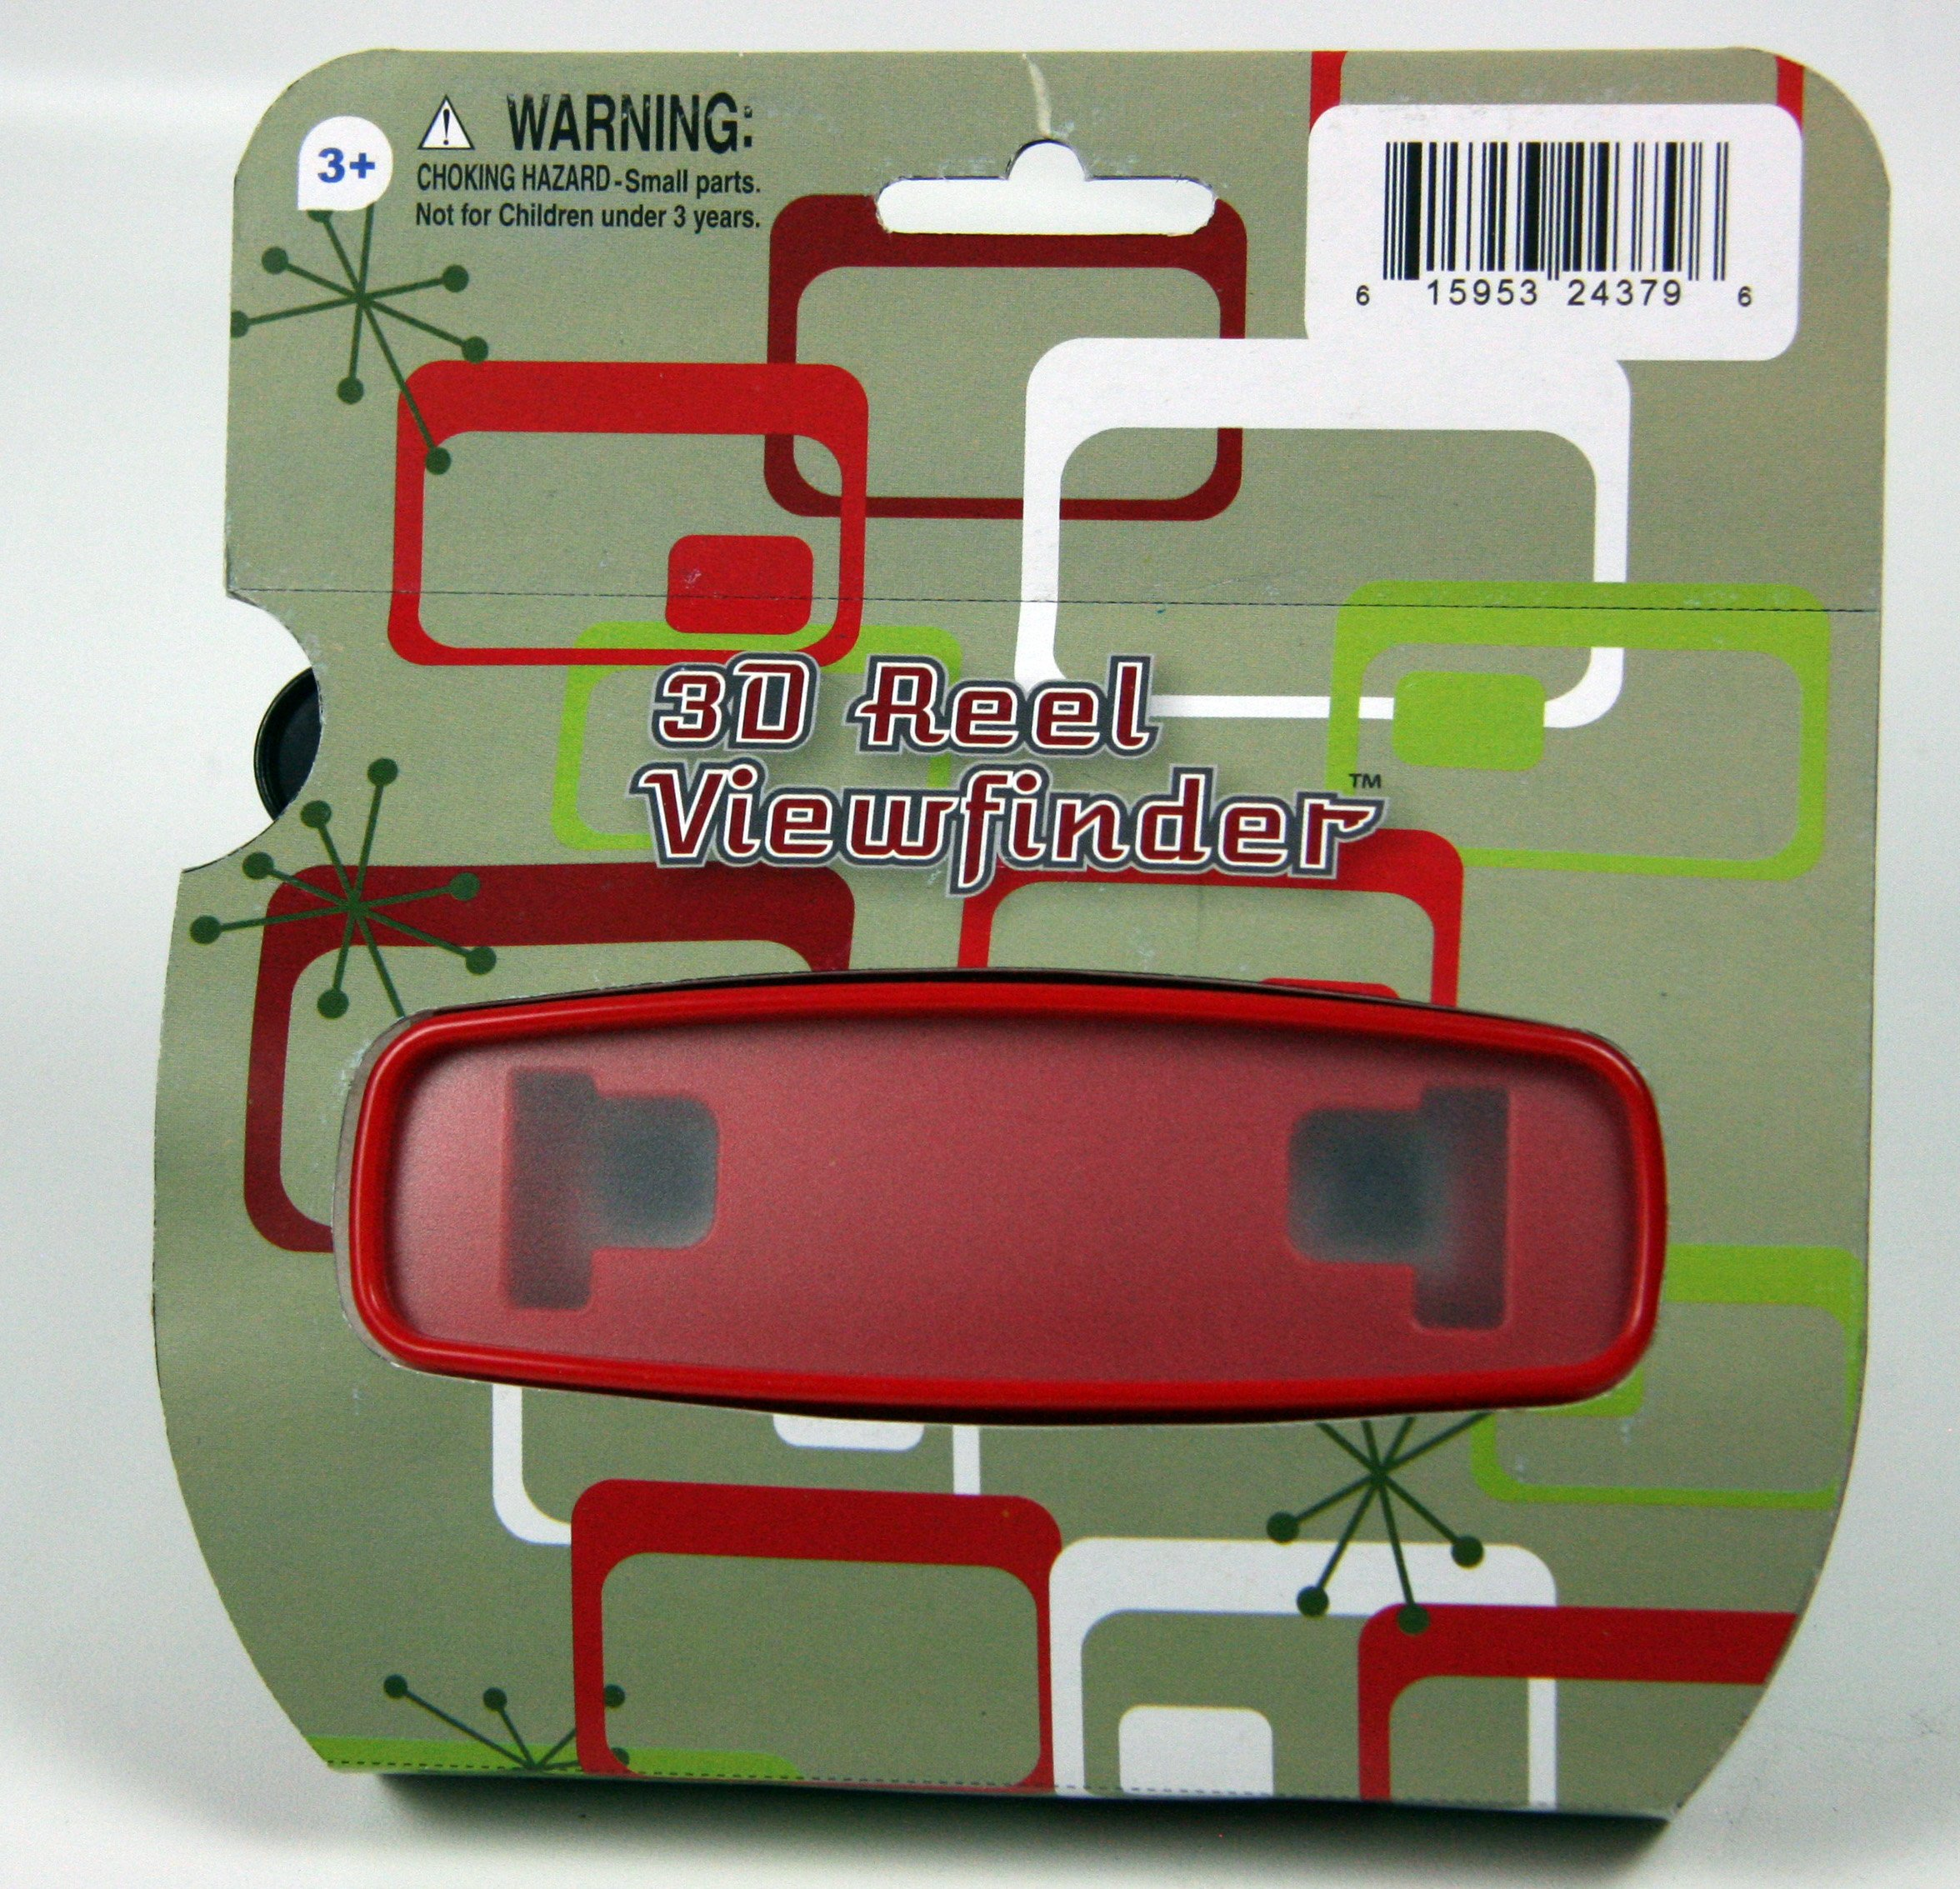 Classic Viewmaster Viewer 3D Model L in RED